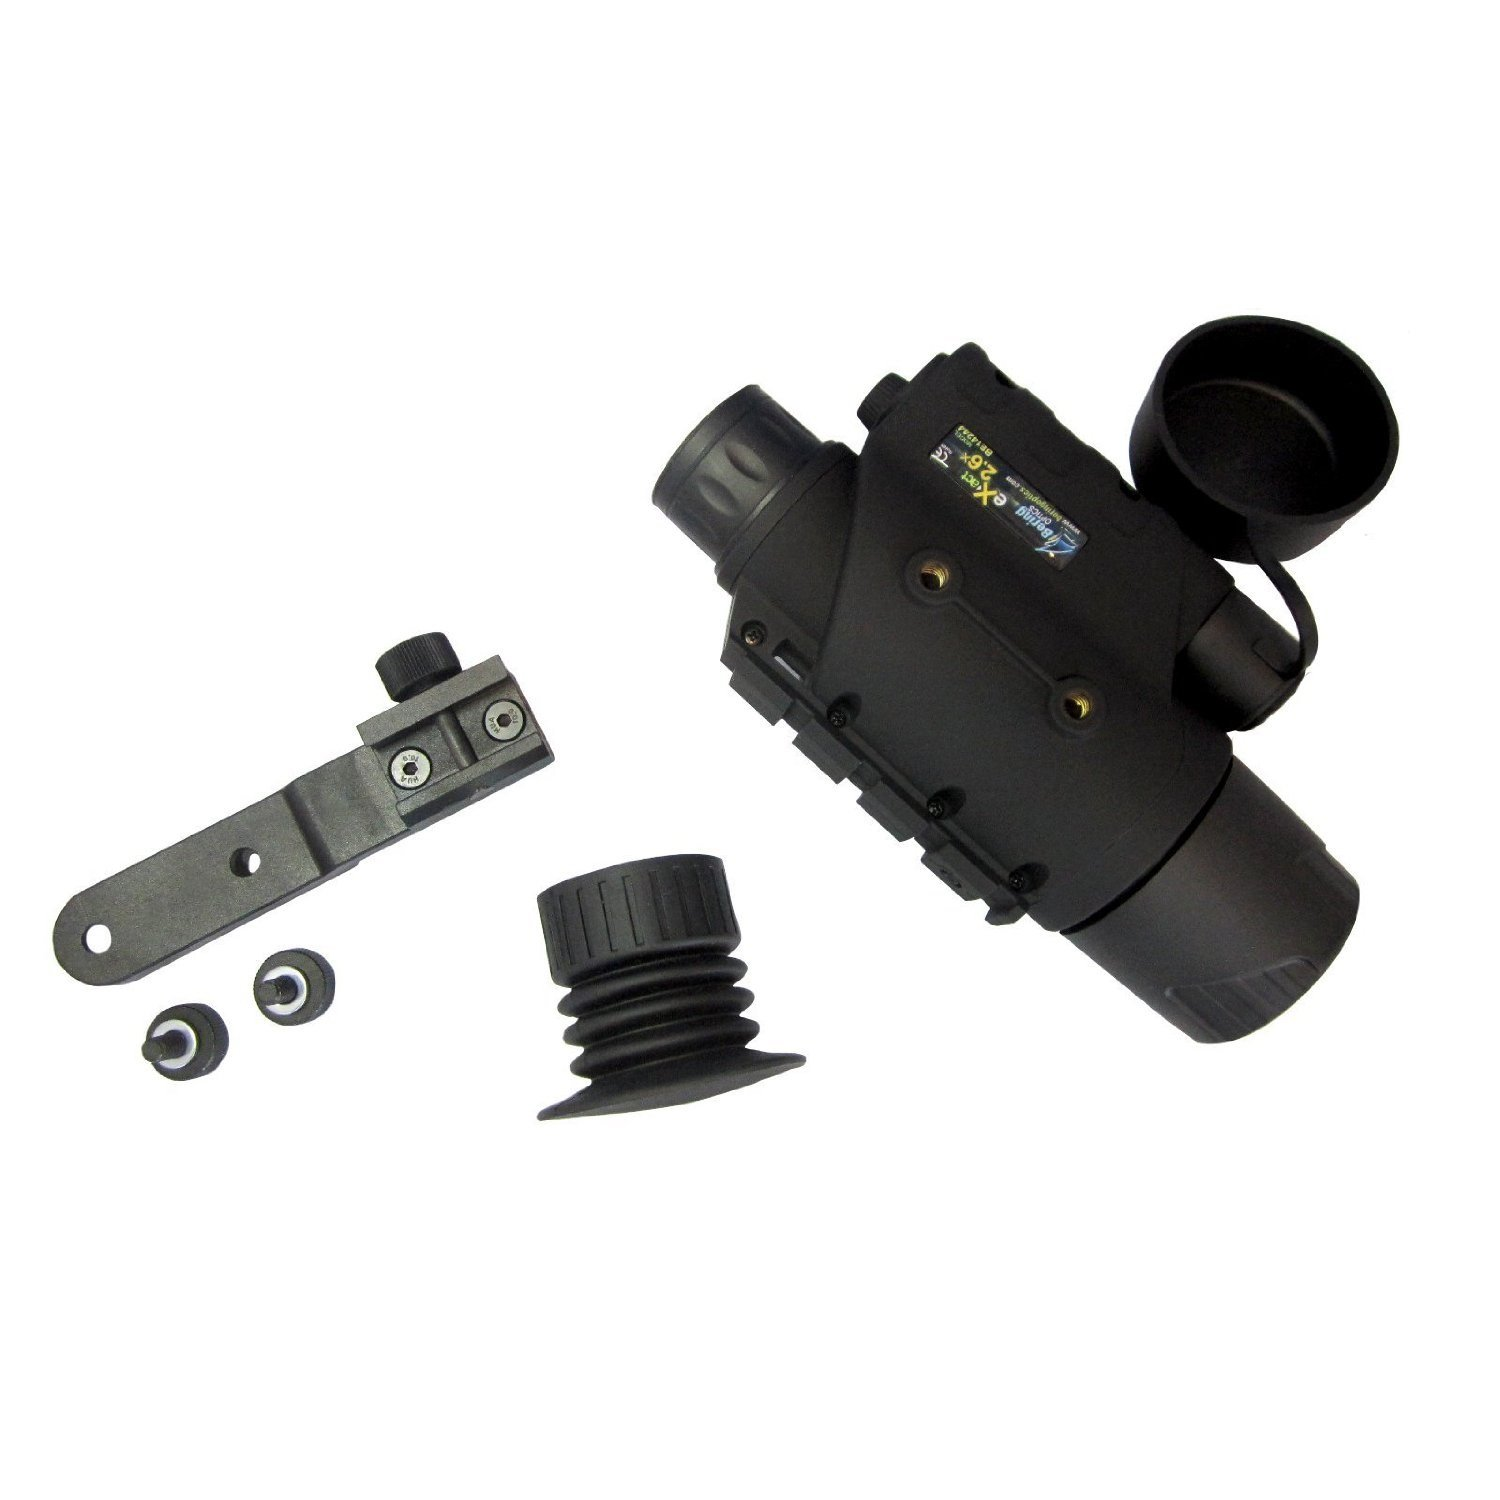 Bering Optics eXact Precision Gen1 Night Vision Scope Kit, Black by Bering Optics